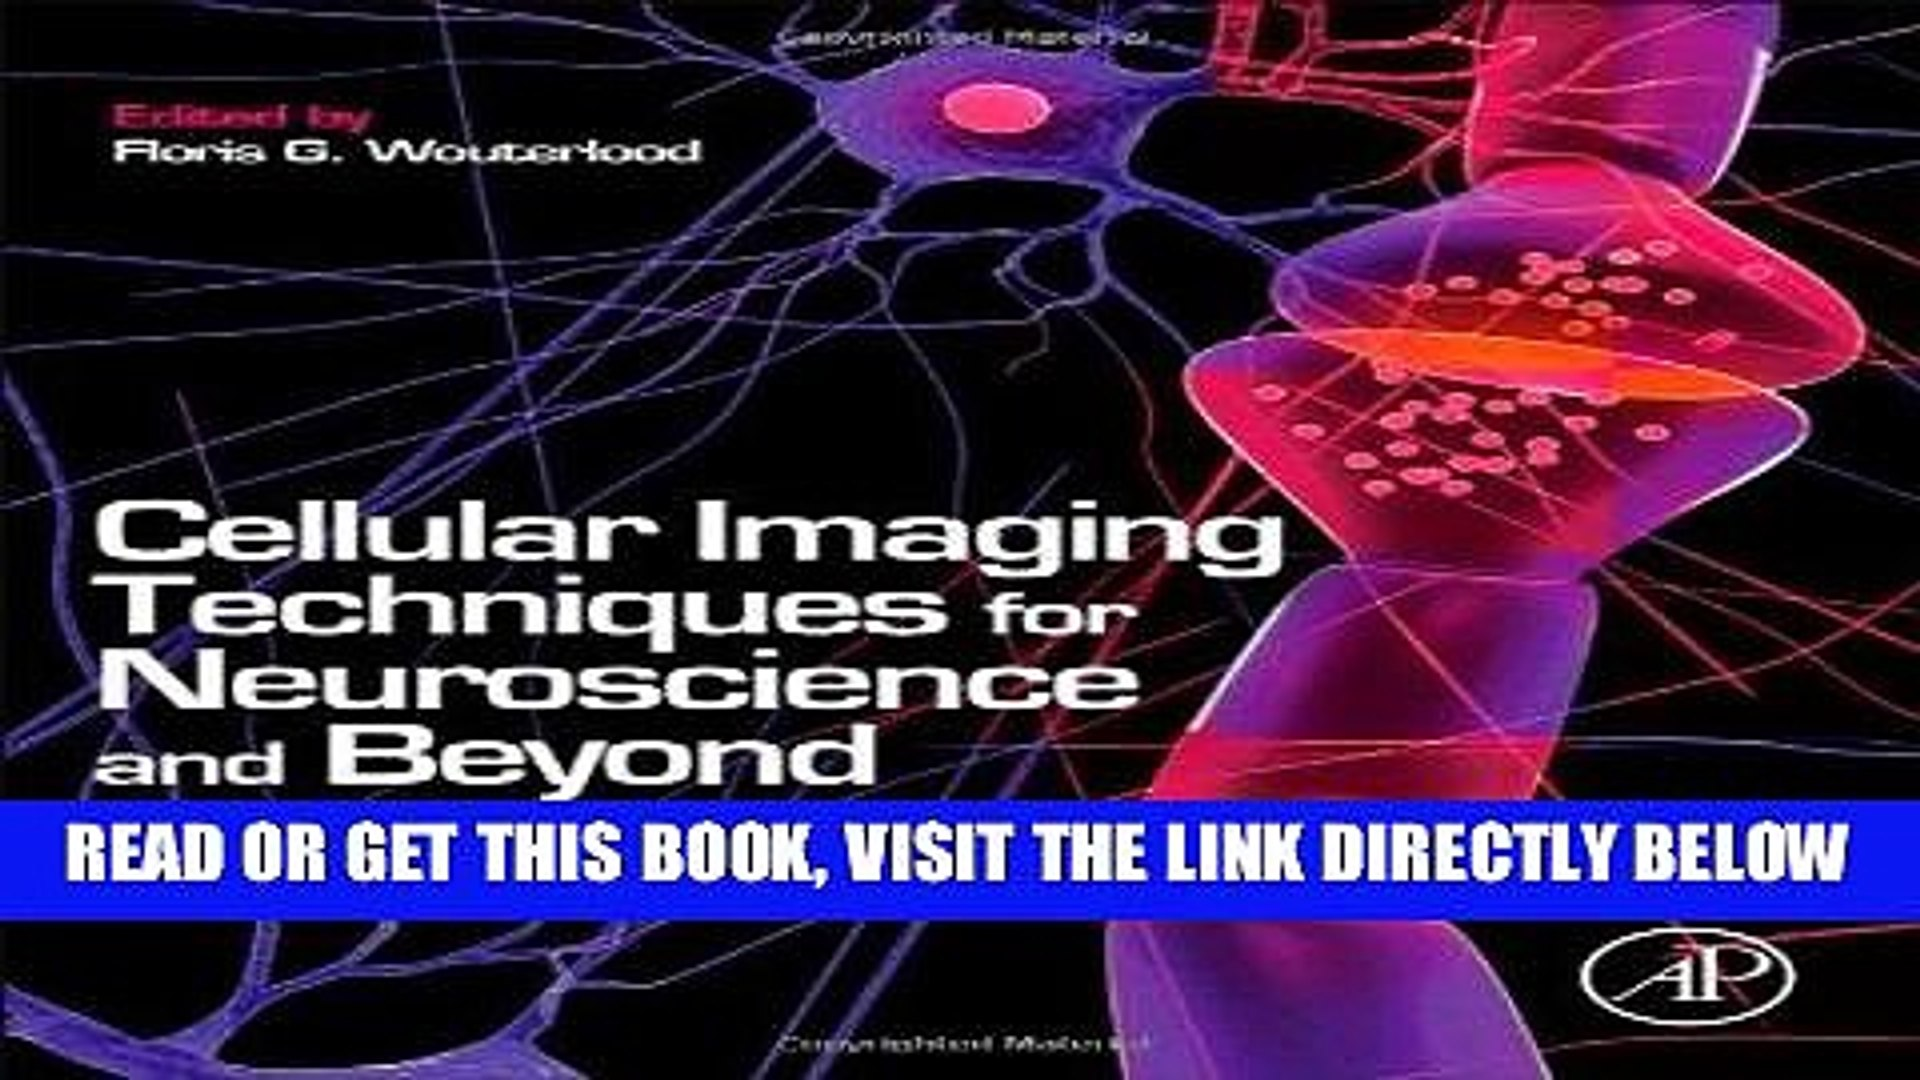 Cellular Imaging Techniques for Neuroscience and Beyond